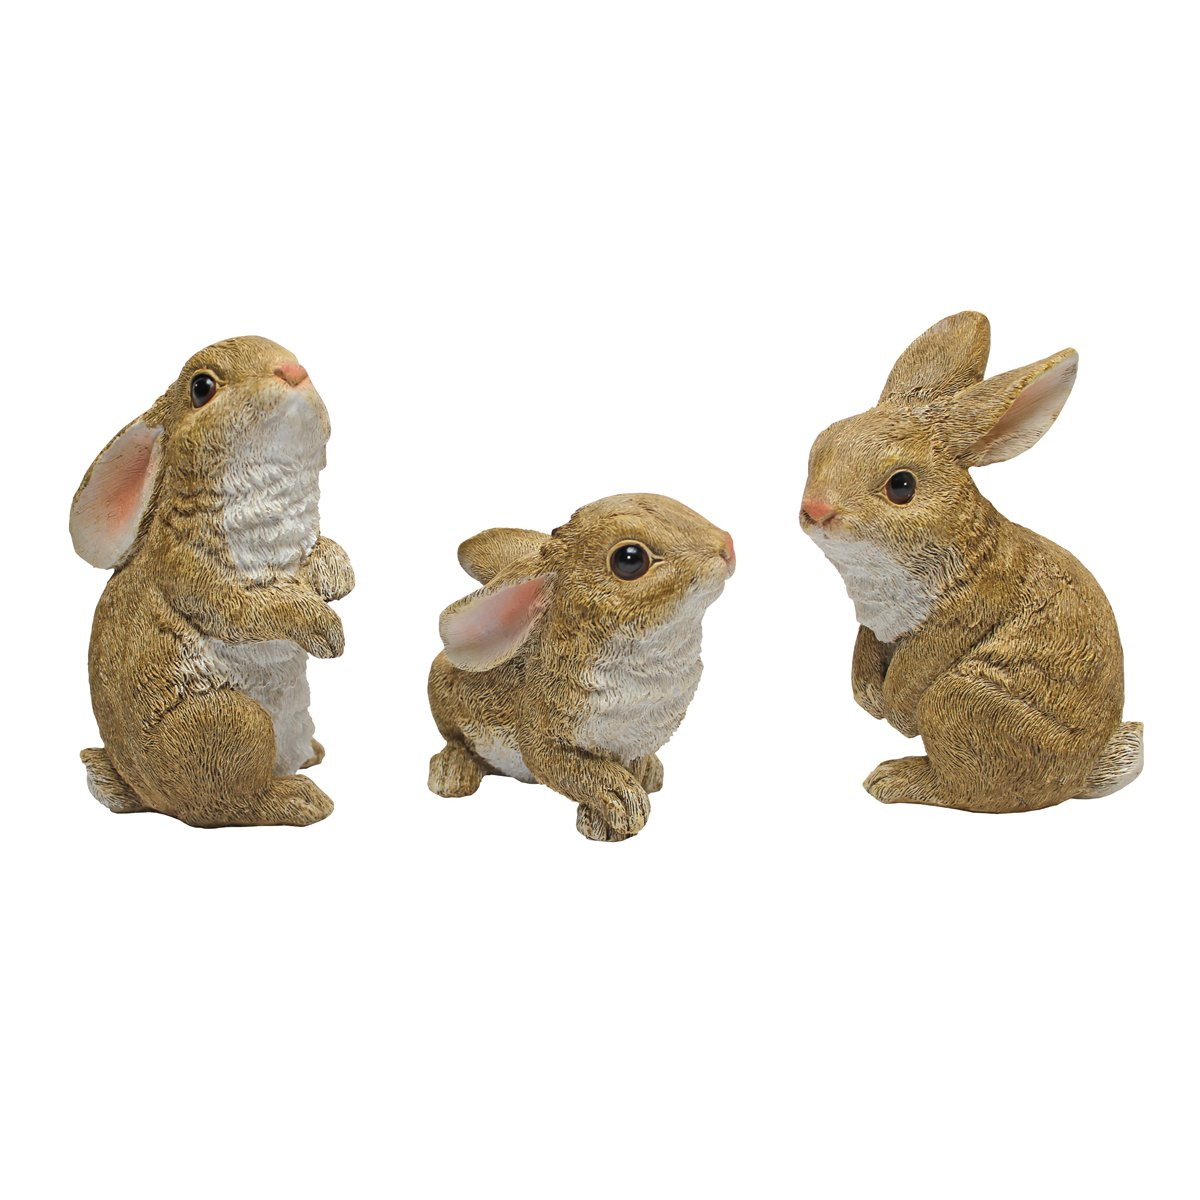 Amazon.com : Design Toscano The Bunny Den Garden Rabbit Statues,  Multicolored : Yard Art : Garden U0026 Outdoor